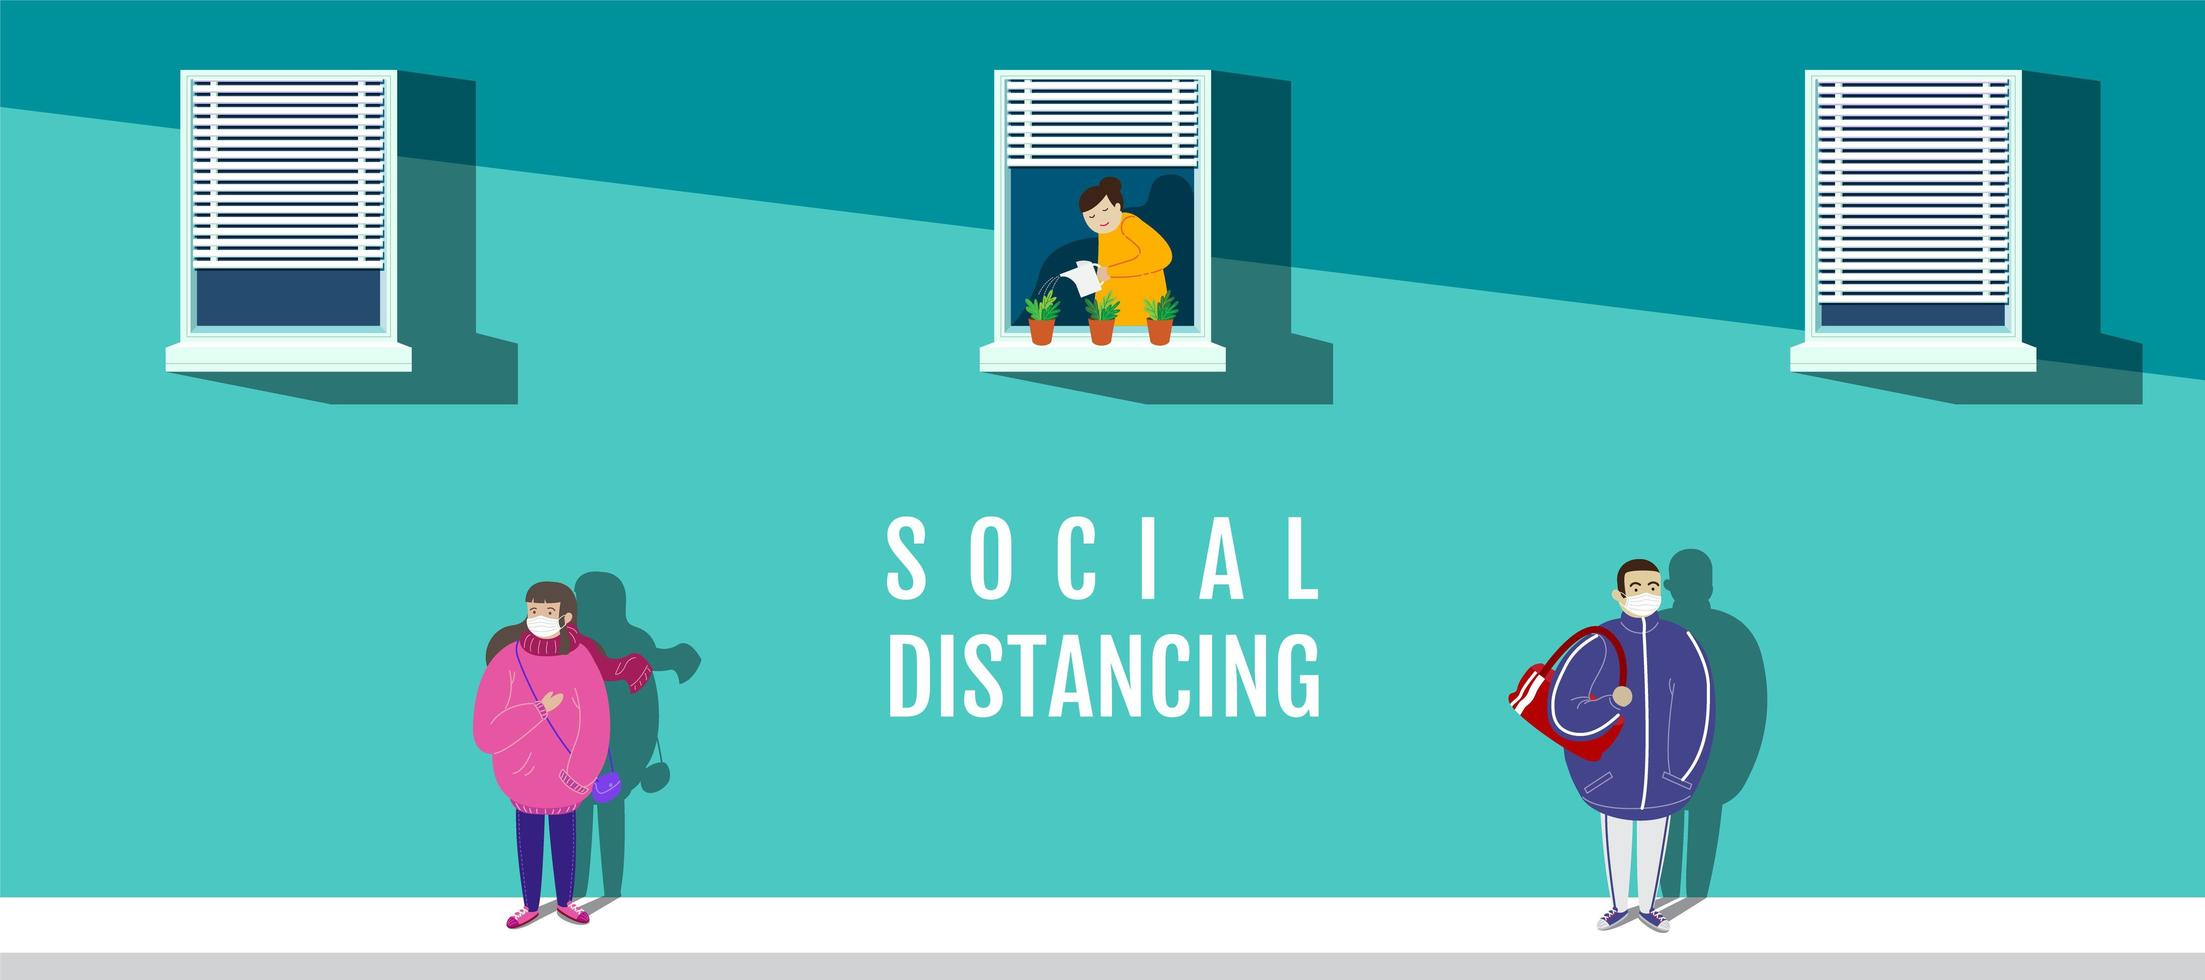 Poster with Characters in Masks Social Distancing vector